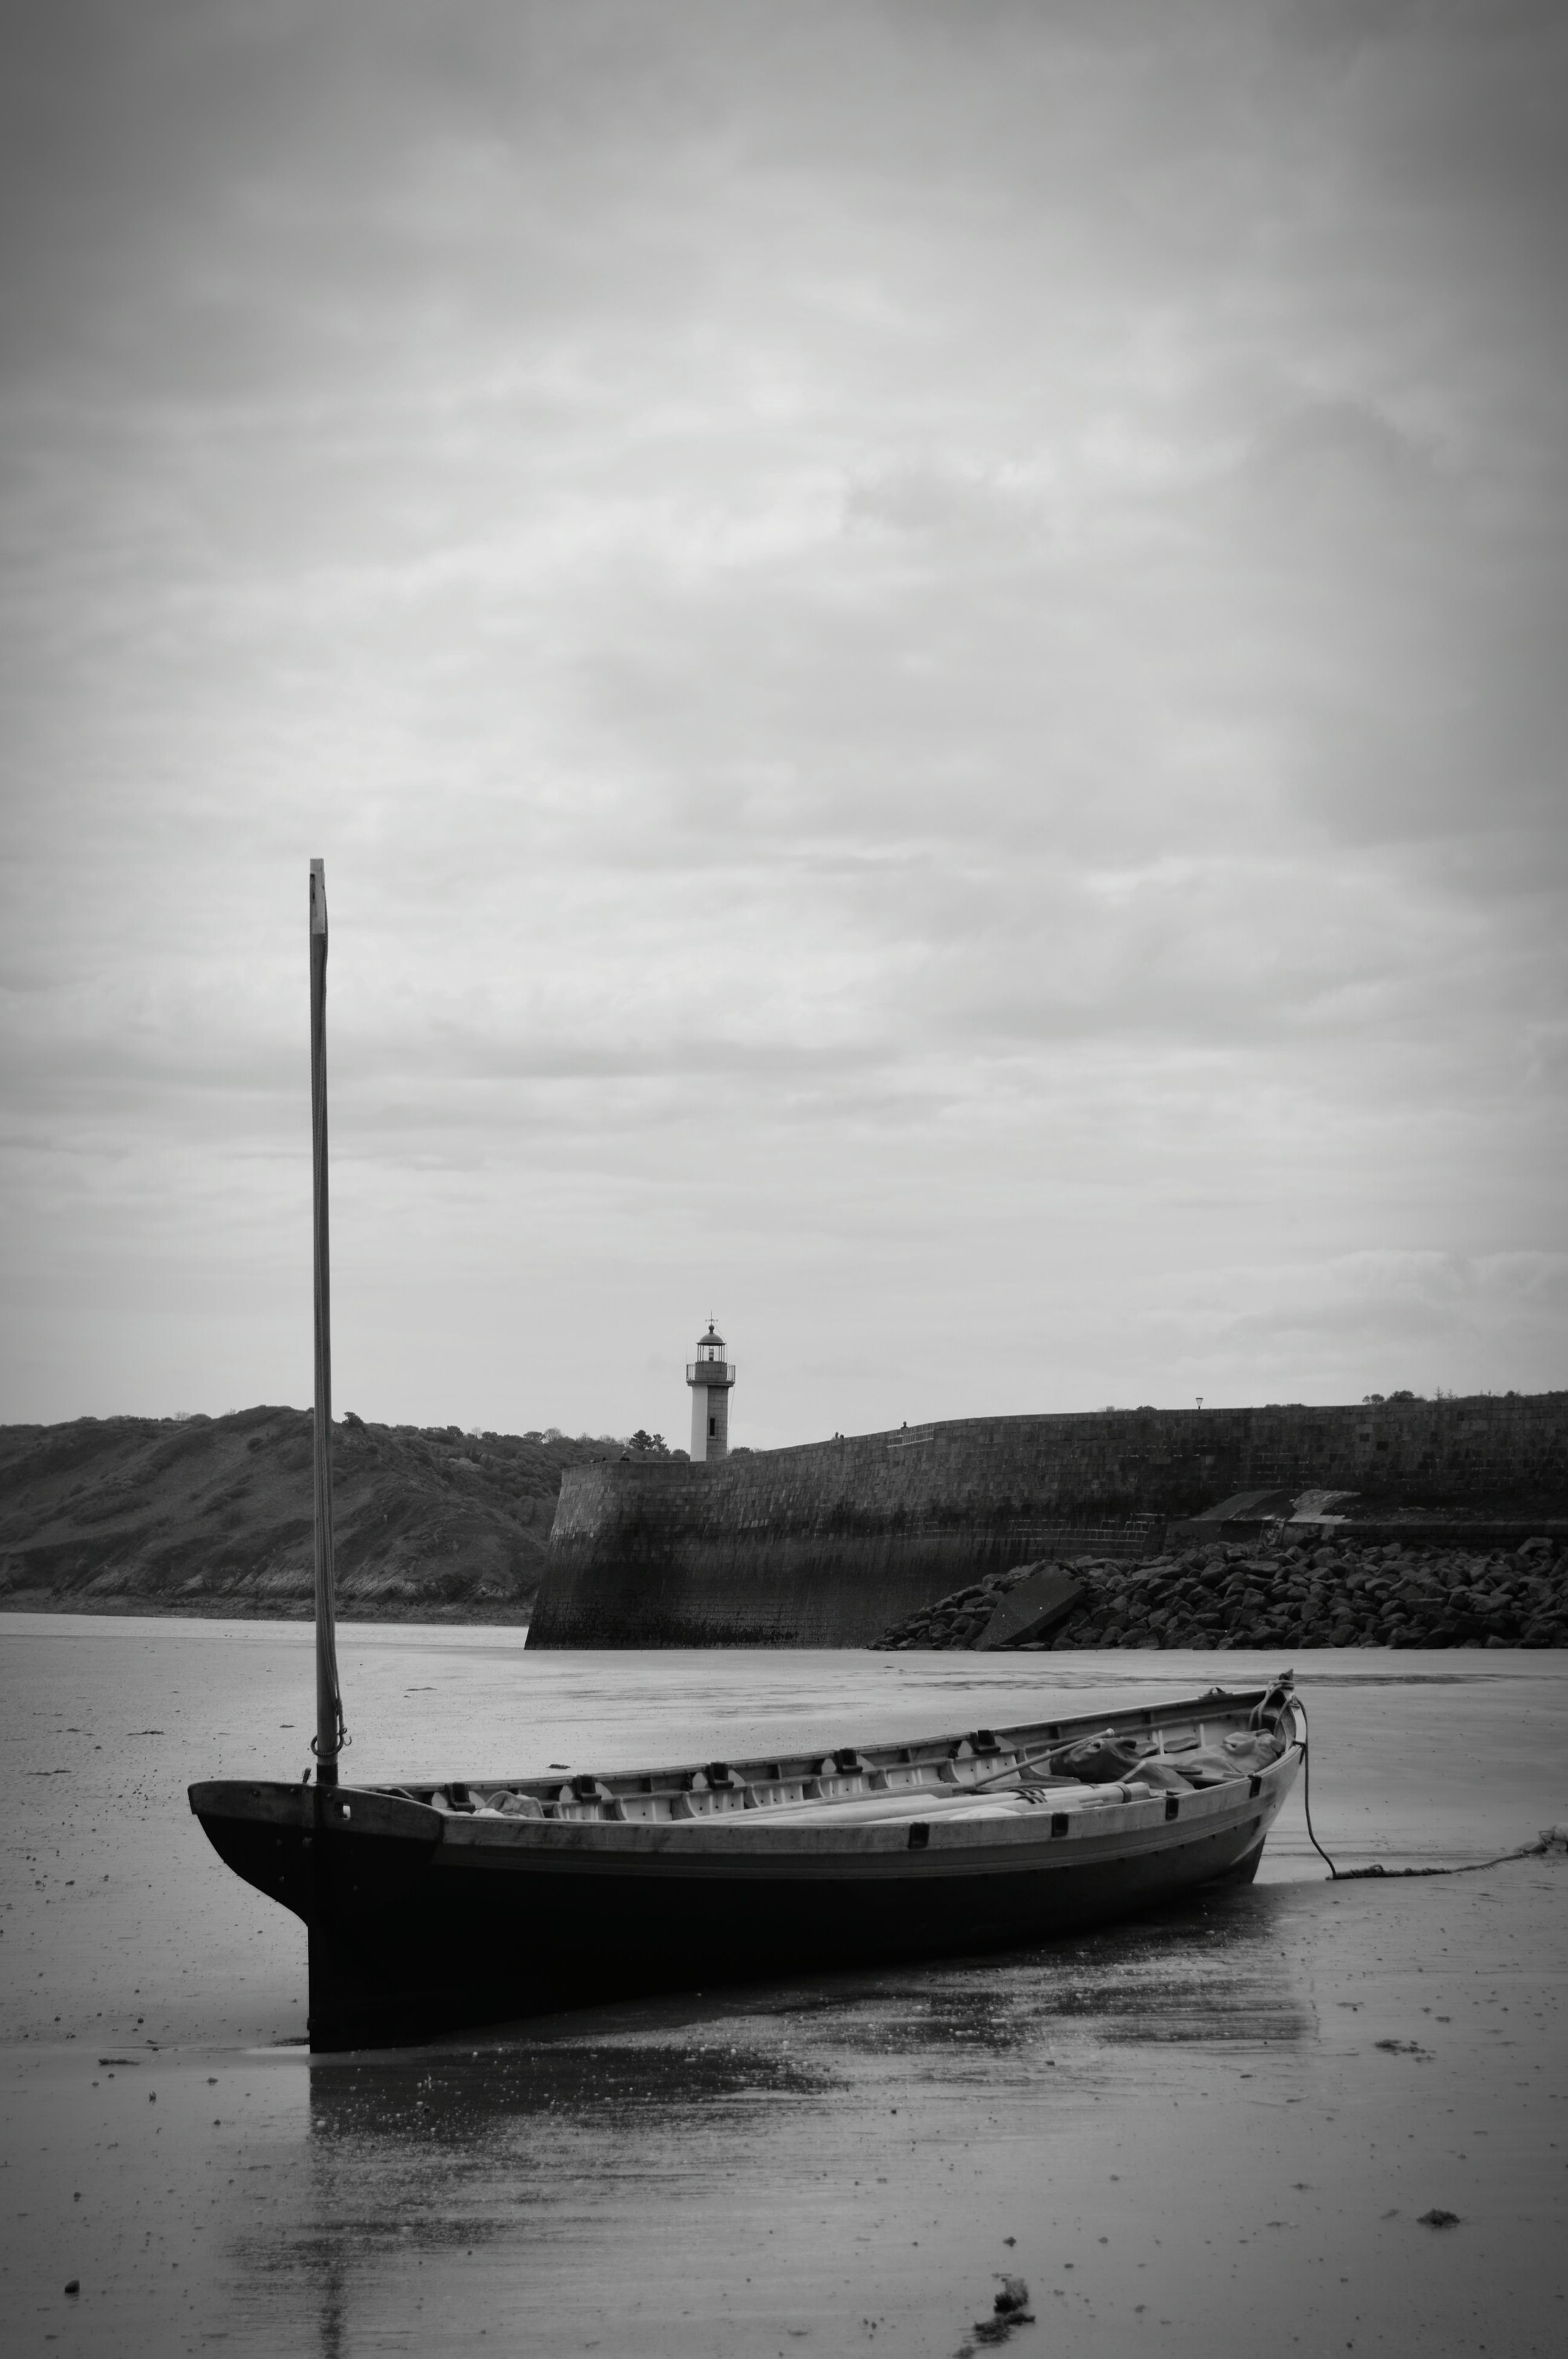 water, nautical vessel, sea, sky, beauty in nature, nature, waterfront, transportation, mode of transport, tranquility, day, outdoors, no people